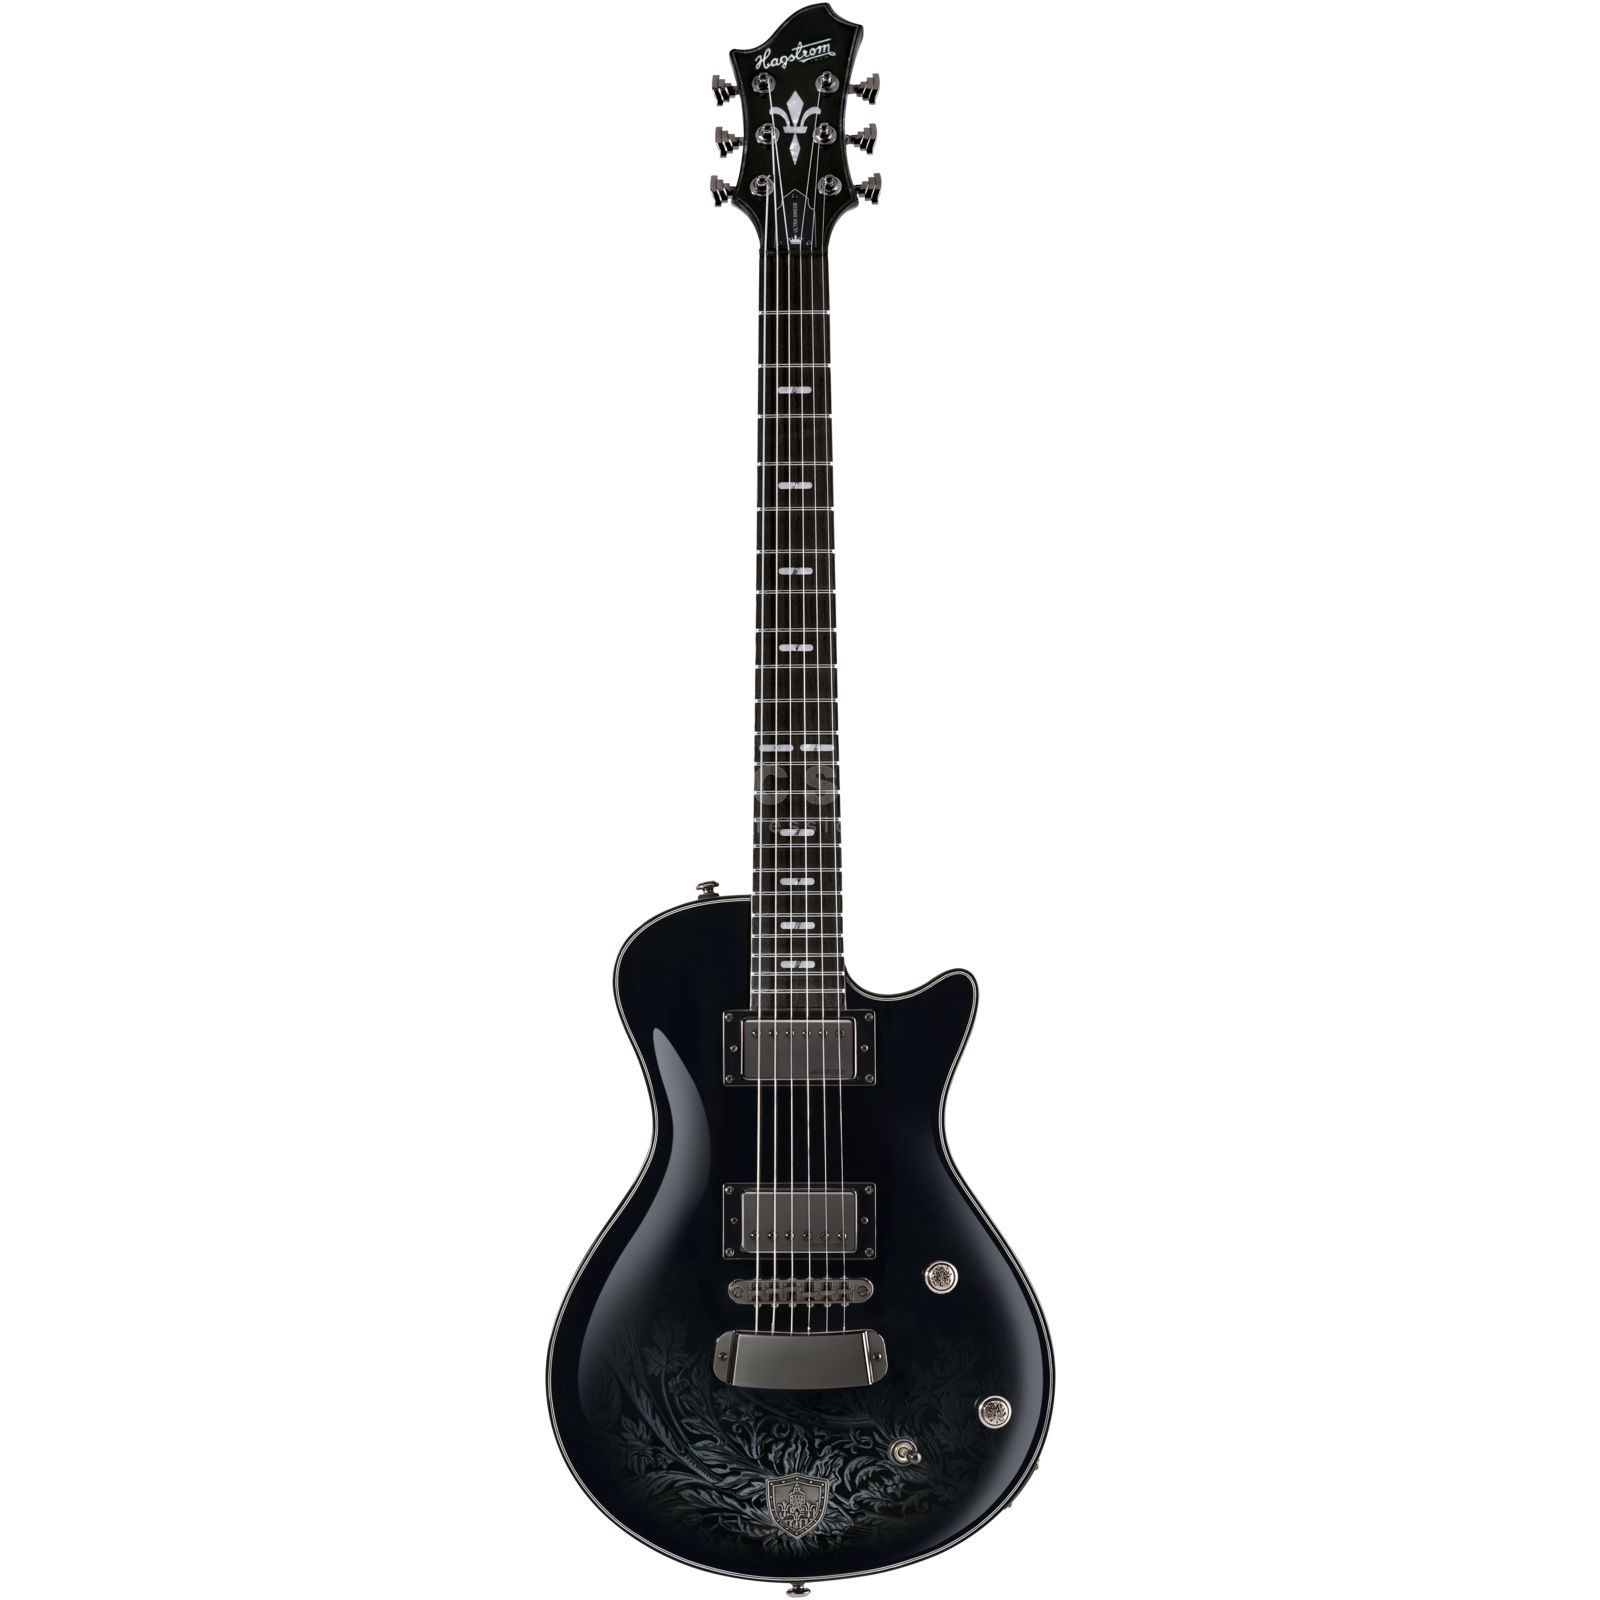 Hagstrom Three Kings Ultra Swede Limited Edition Black Gloss Product Image